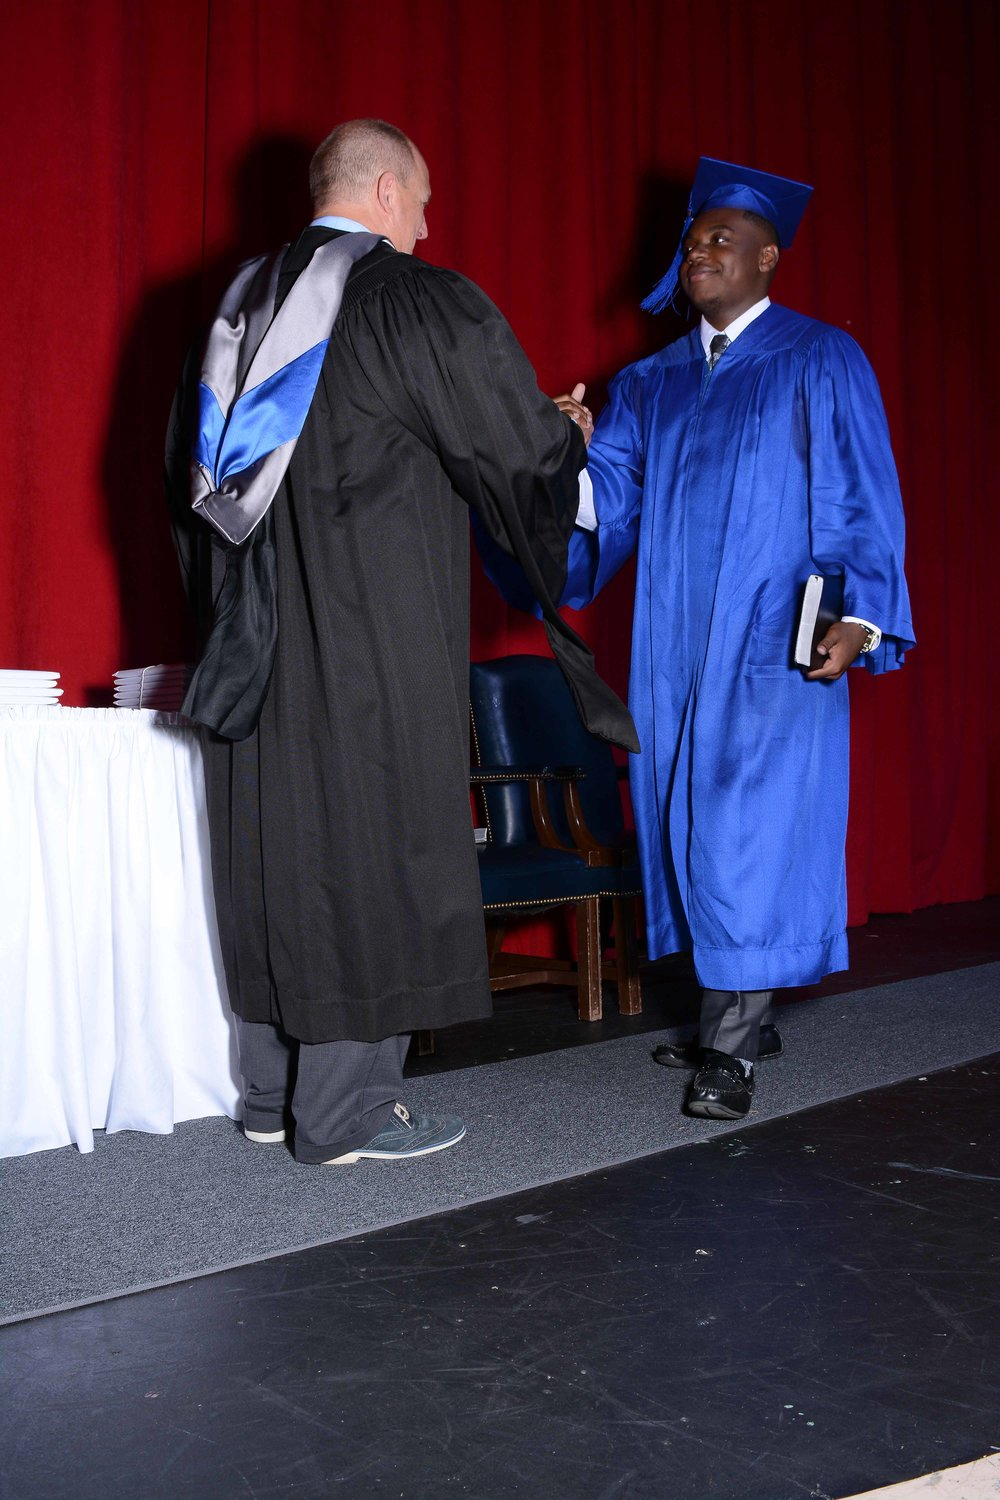 May14 Commencement156.jpg